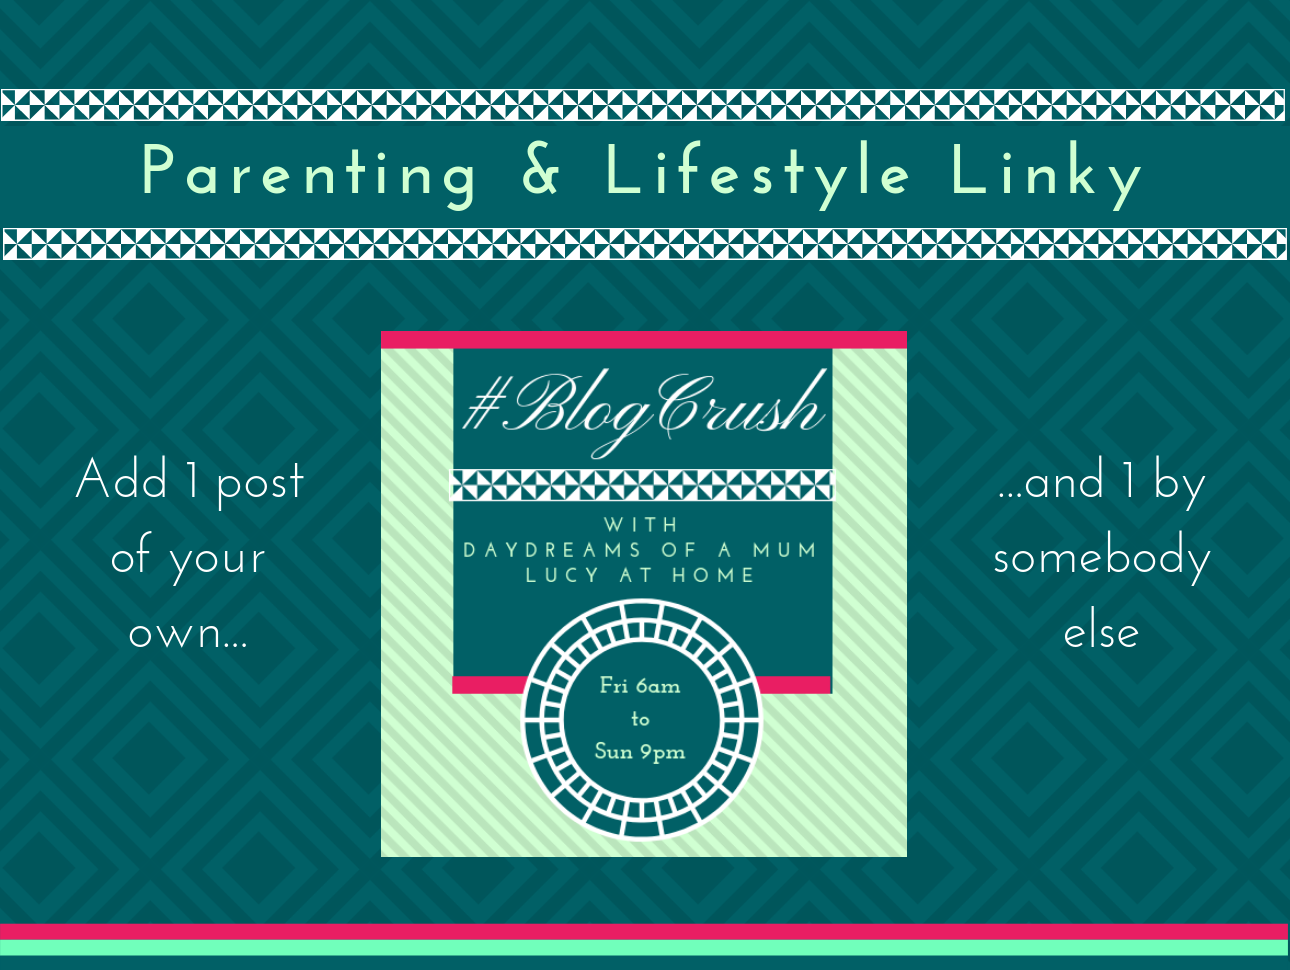 BlogCrush Linky Concept - BlogCrush Week 101